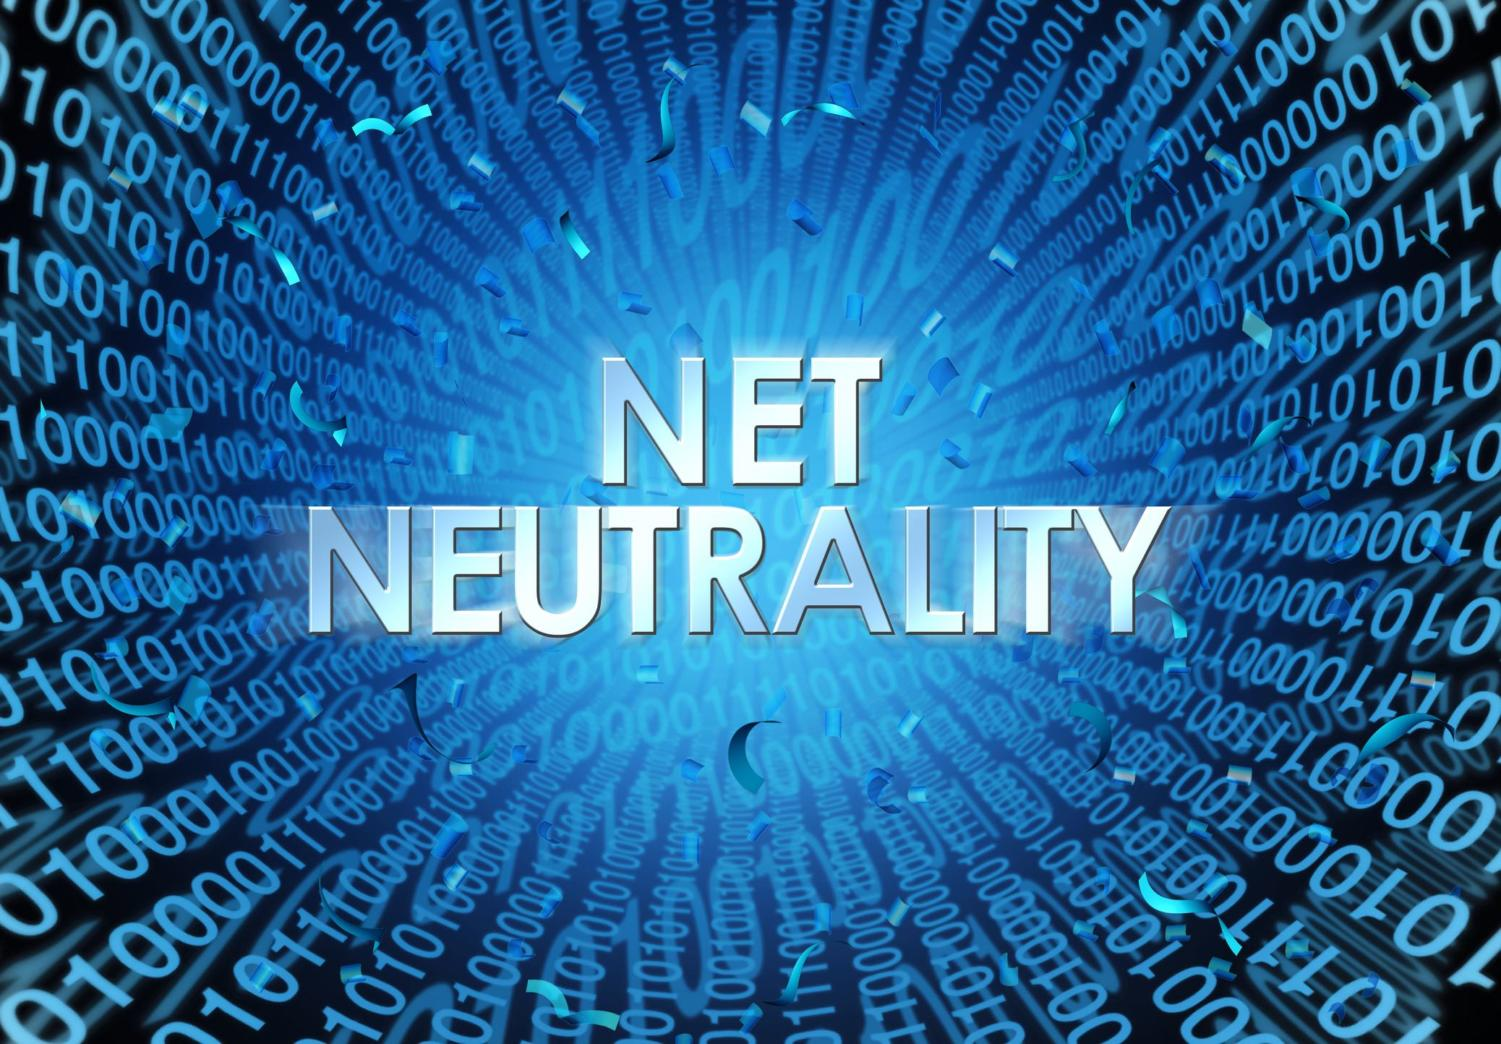 Net neutrality concept as an internet regulation idea with text and binary cade as an online technology metaphor for web freedom as a 3D illustration.